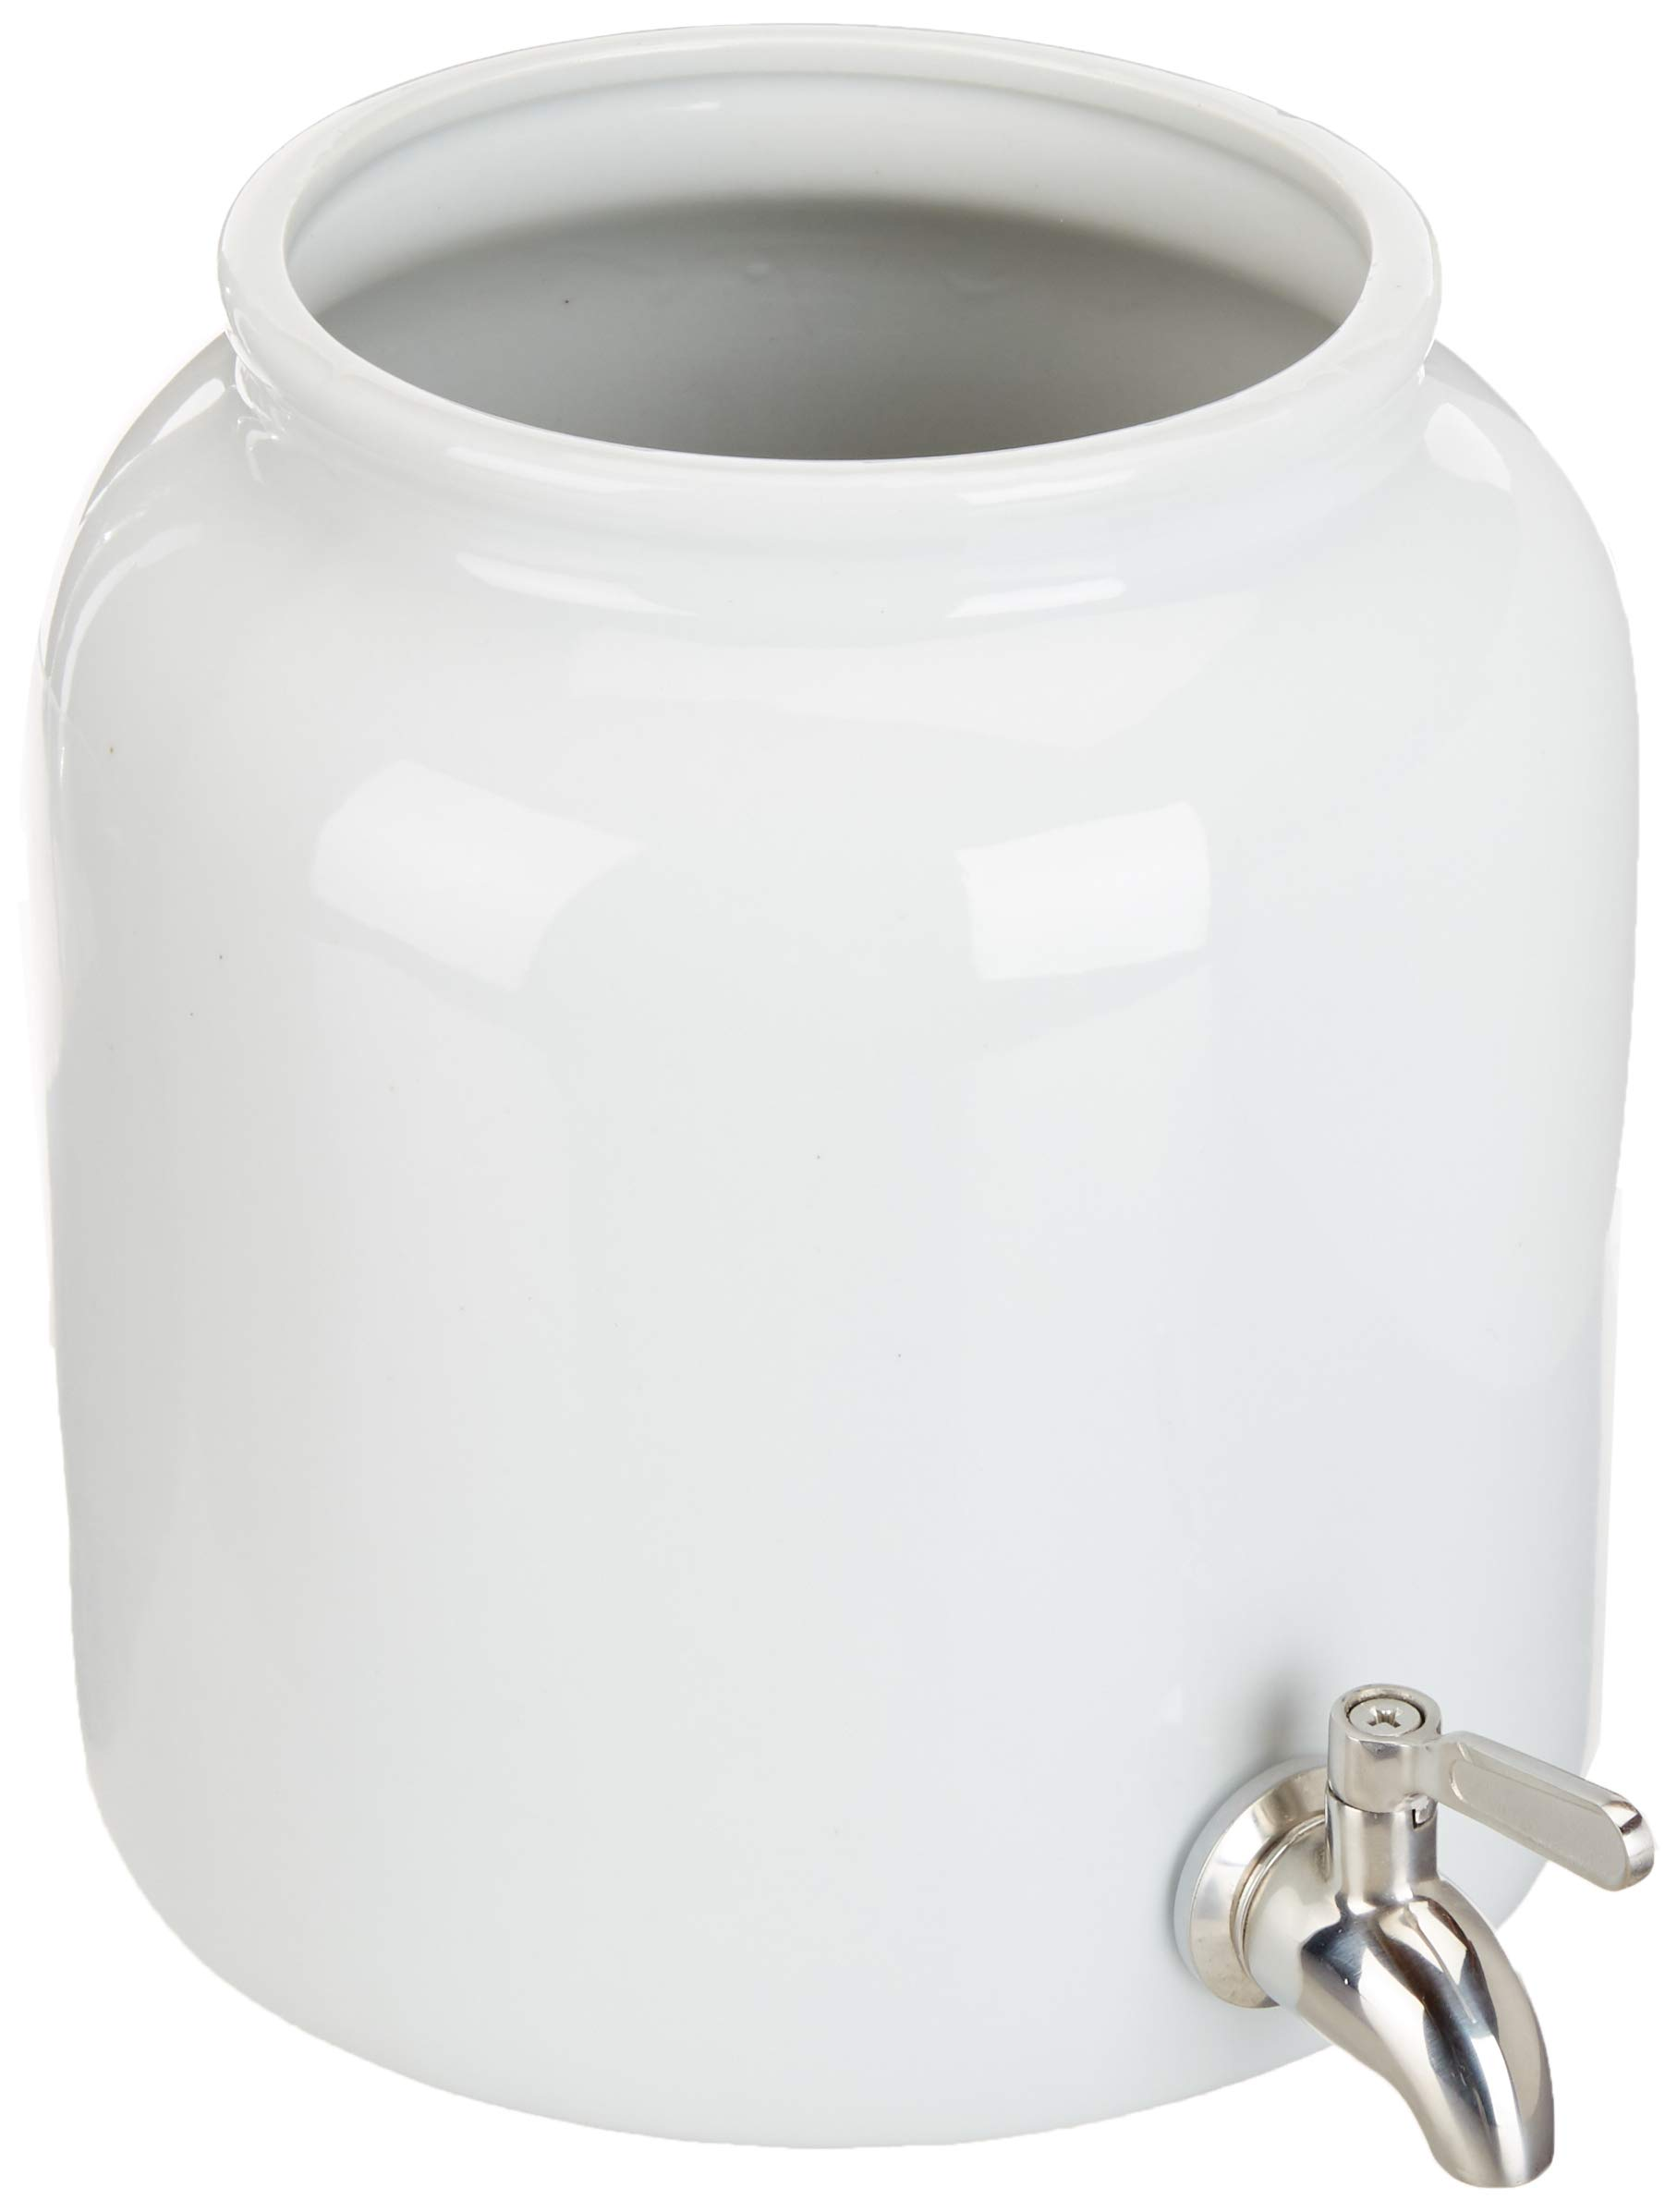 Continuous Brew Kombucha Jar with Stainless Steel Spigot, 5 Liter (1.3 Gallon) Ceramic Kombucha Brew Vessel for Continuous Kombucha Batches with Cotton Cloth and Rubber Band (Natural White) by kitchentoolz